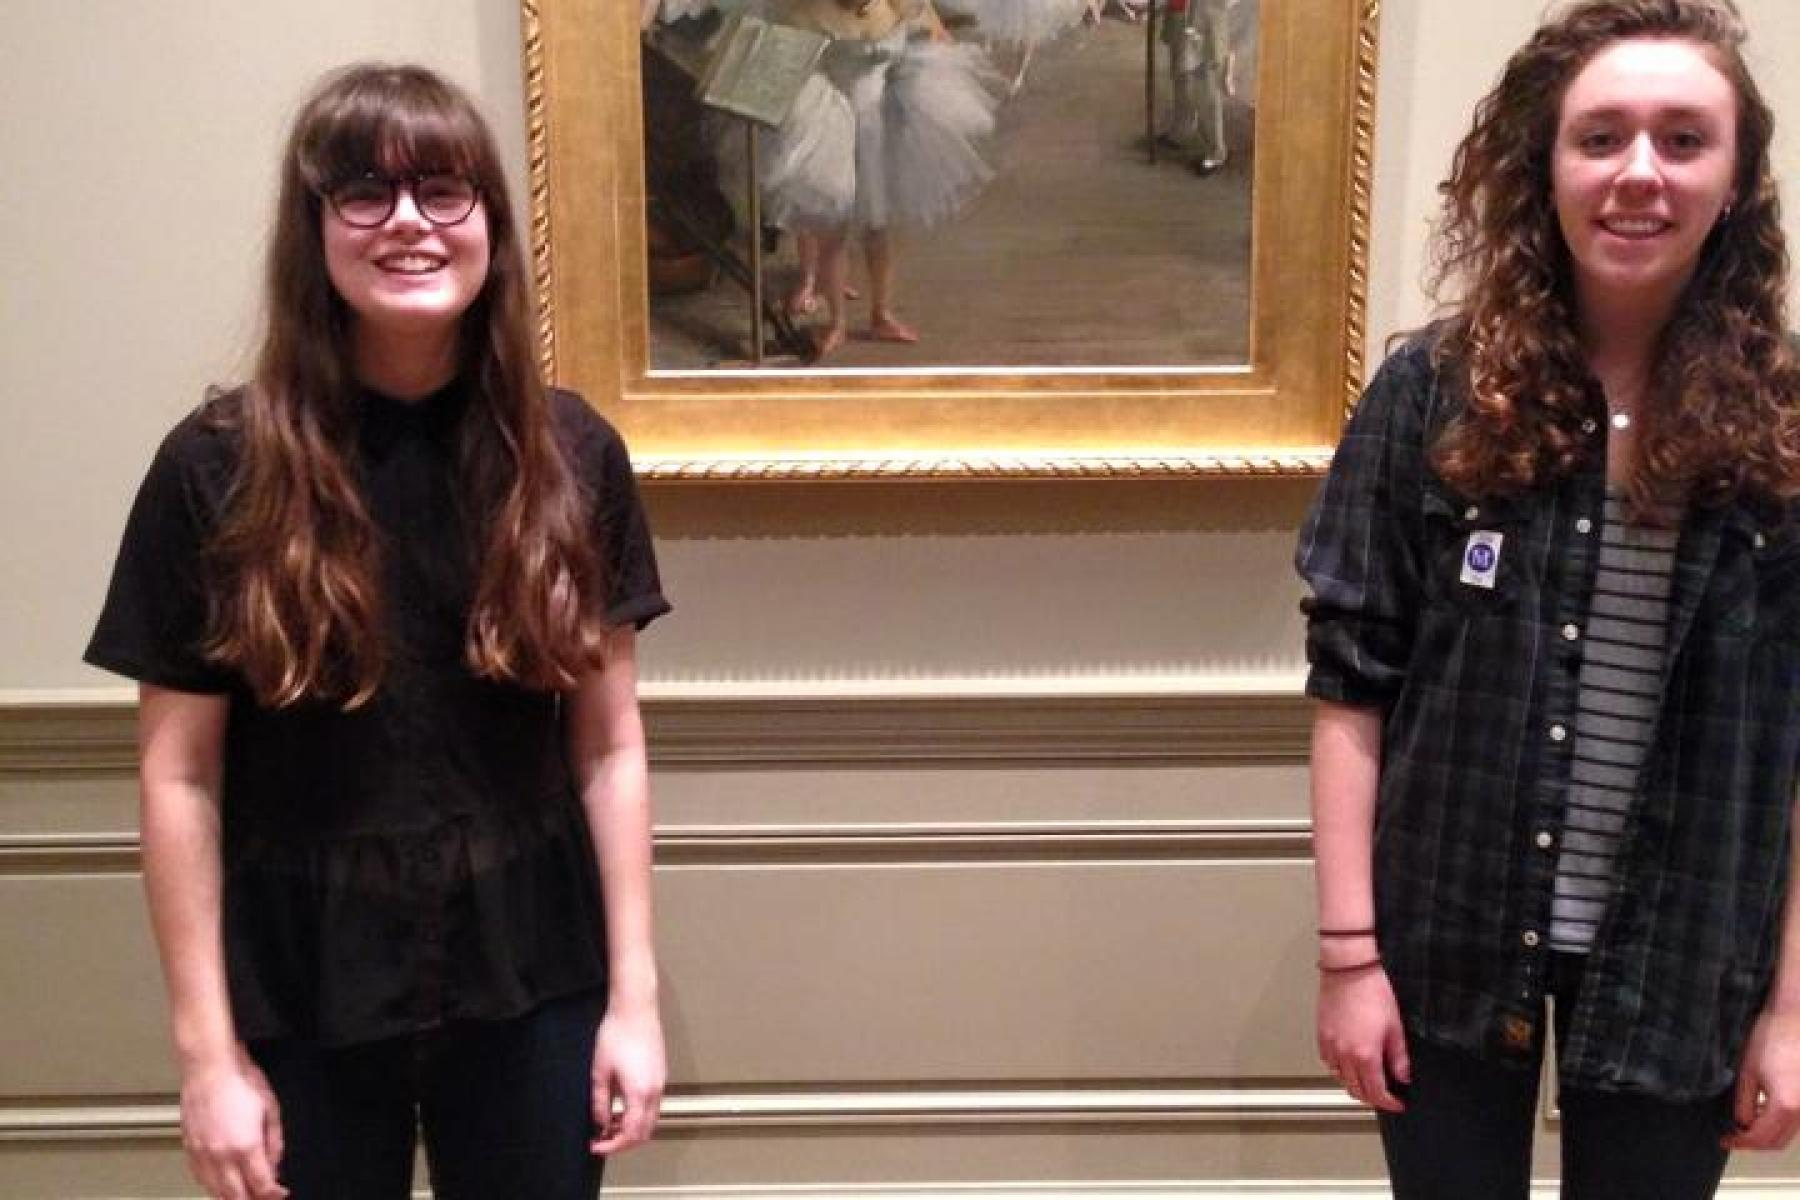 Lauren, Anna, and a Degas painting.